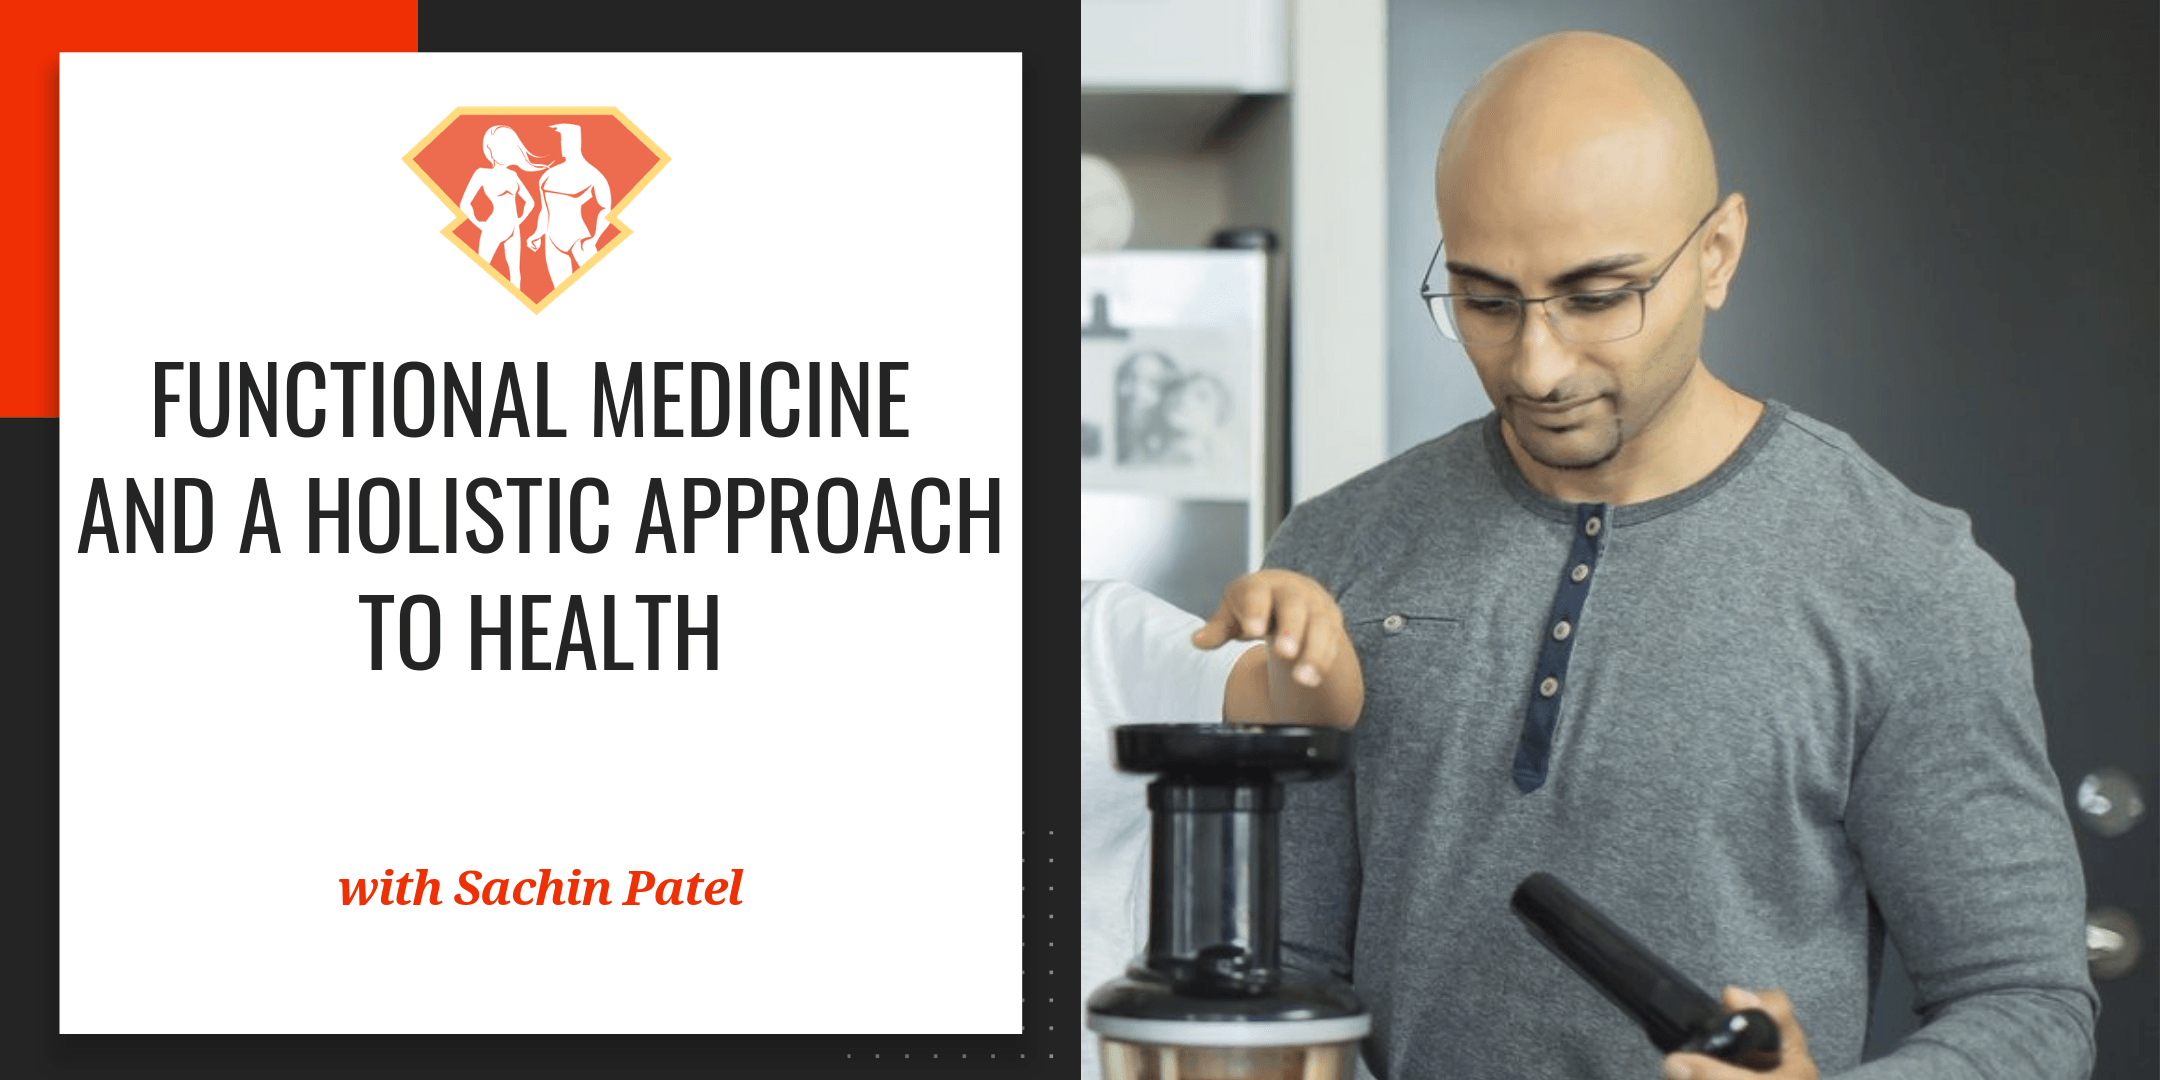 Sachin Patel On Functional Medicine And A Holistic Approach To